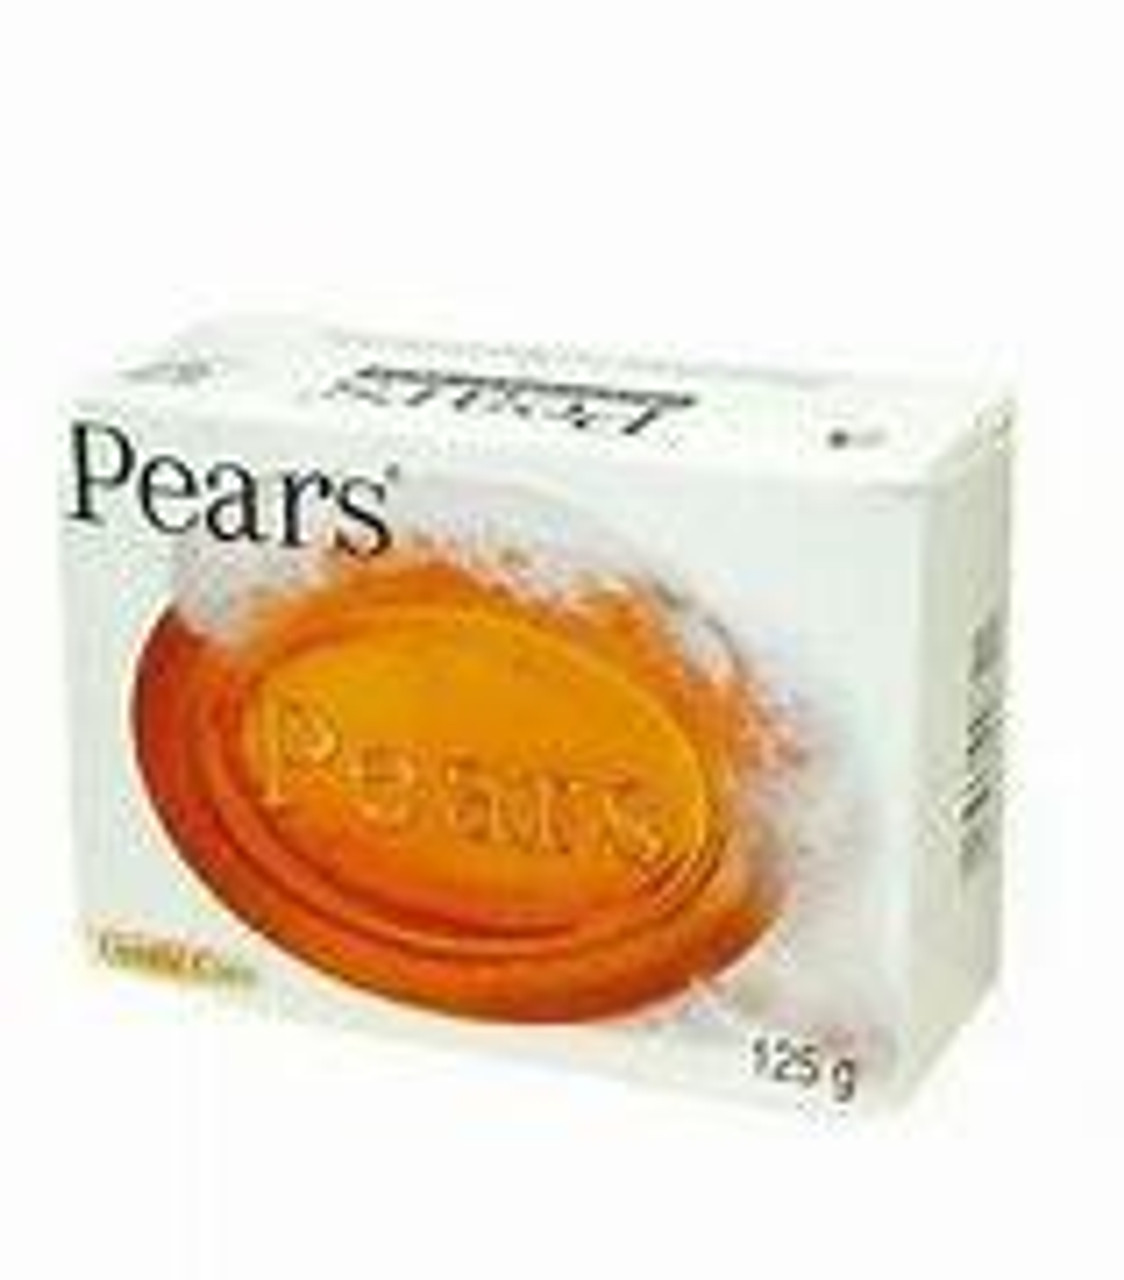 Pears - Transparent Bar Soap, 100g